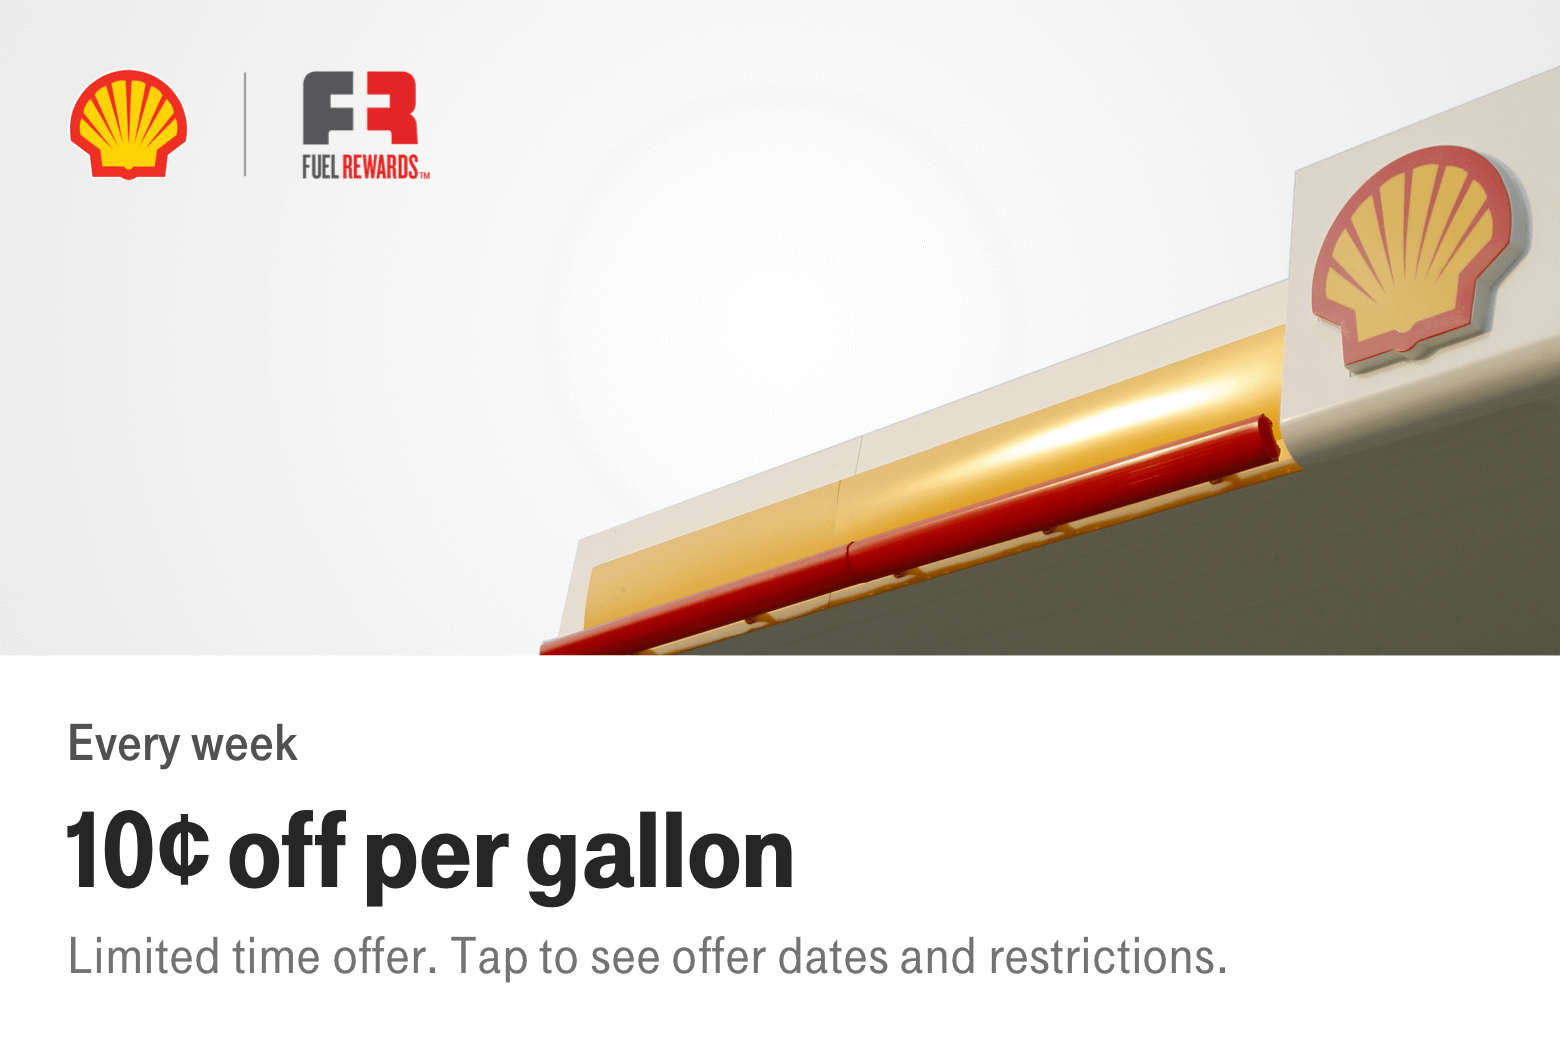 Shell. Fuel Rewards. Every week. 10¢ off per gallon. Limited time offer. Tap to see offer dates and restrictions.